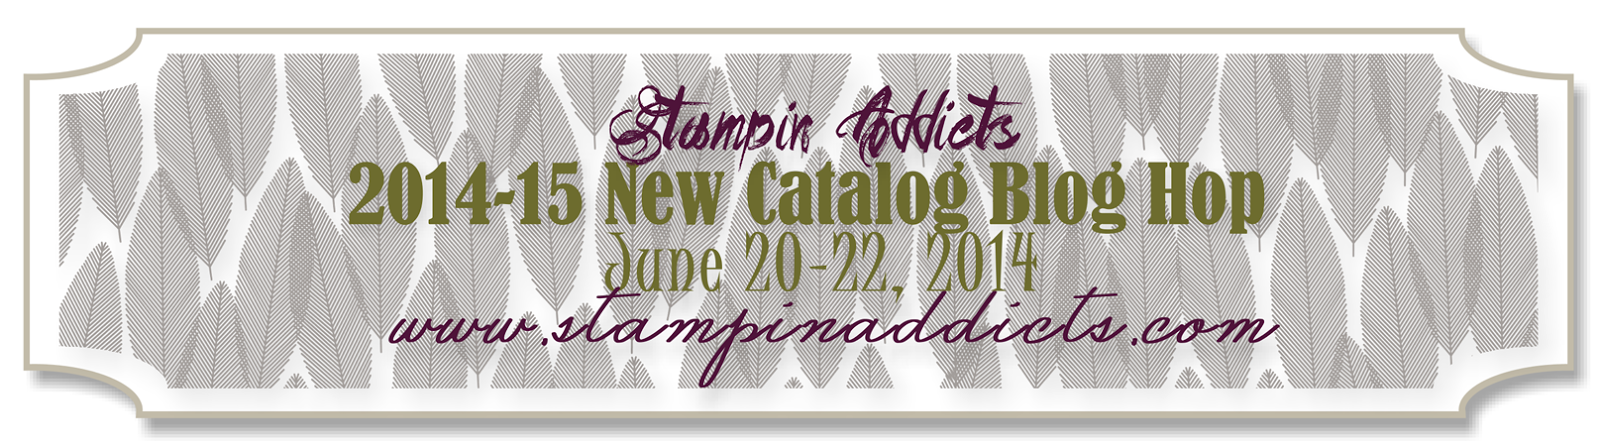 http://www.stampinaddicts.com/forums/general-stampin-talk/9523-new-catalog-blog-hop-starts-friday-june-20th.html#post431366